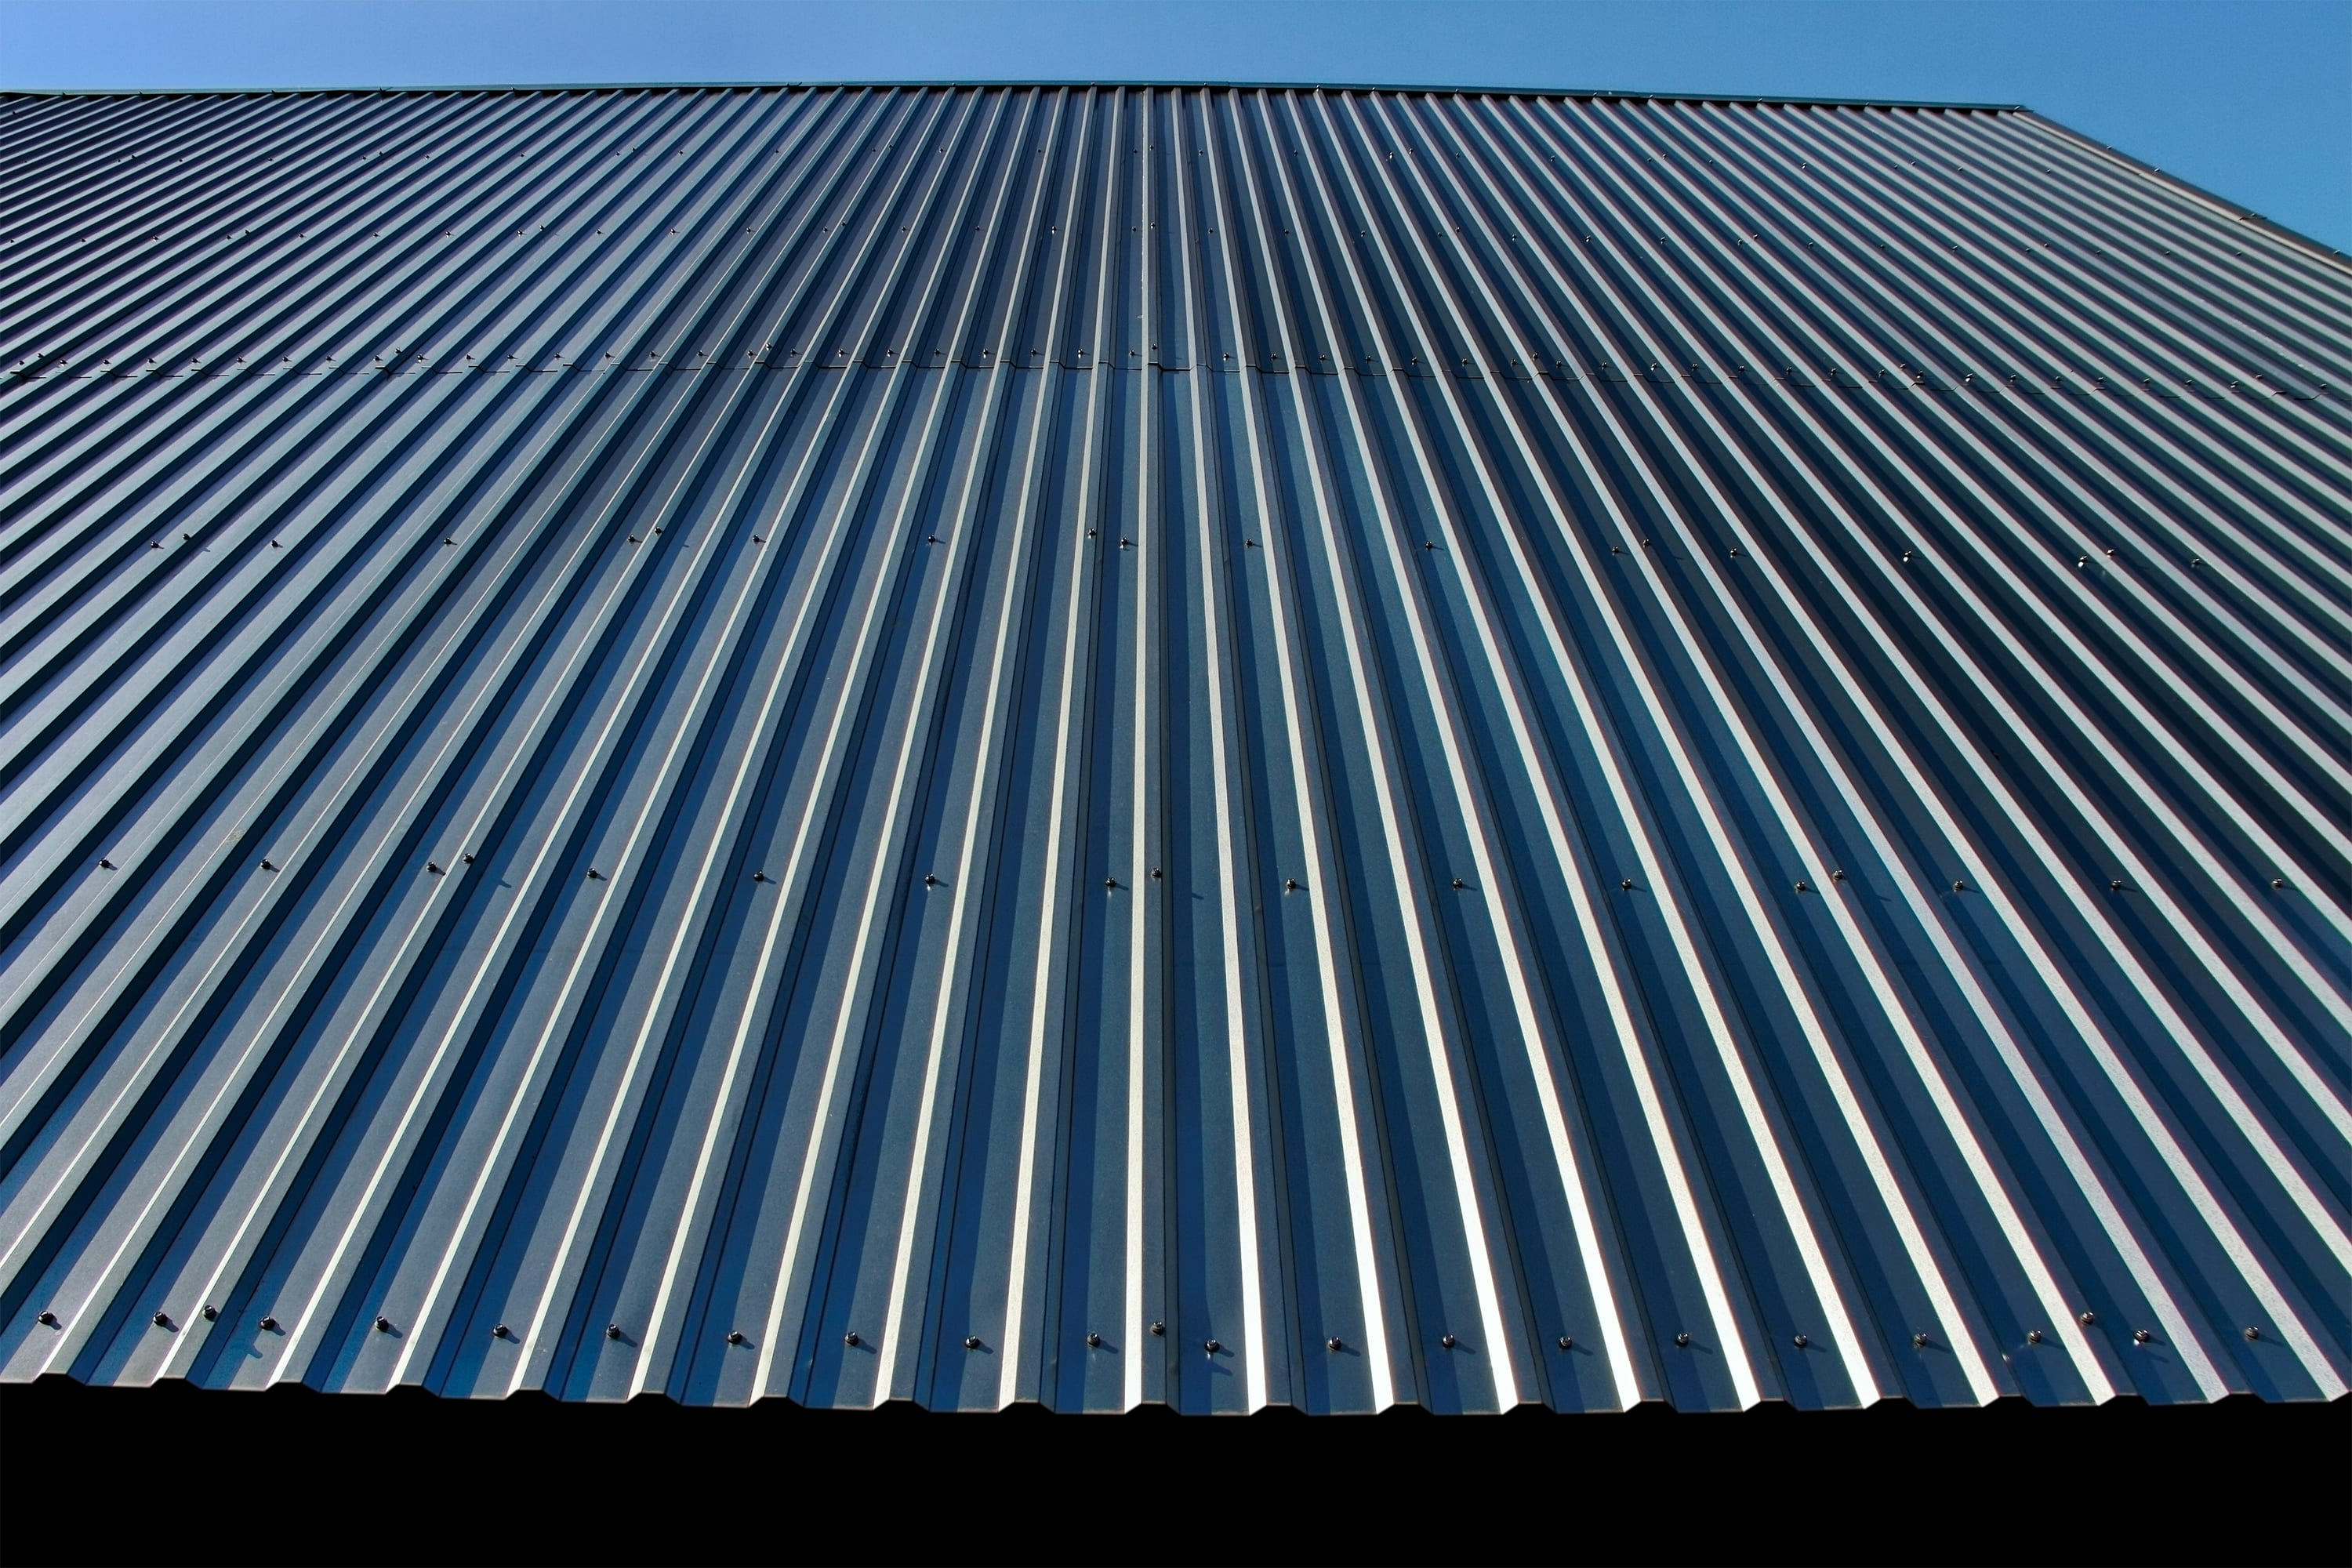 Steel Roofing Installation Long Run Roofing Auckland